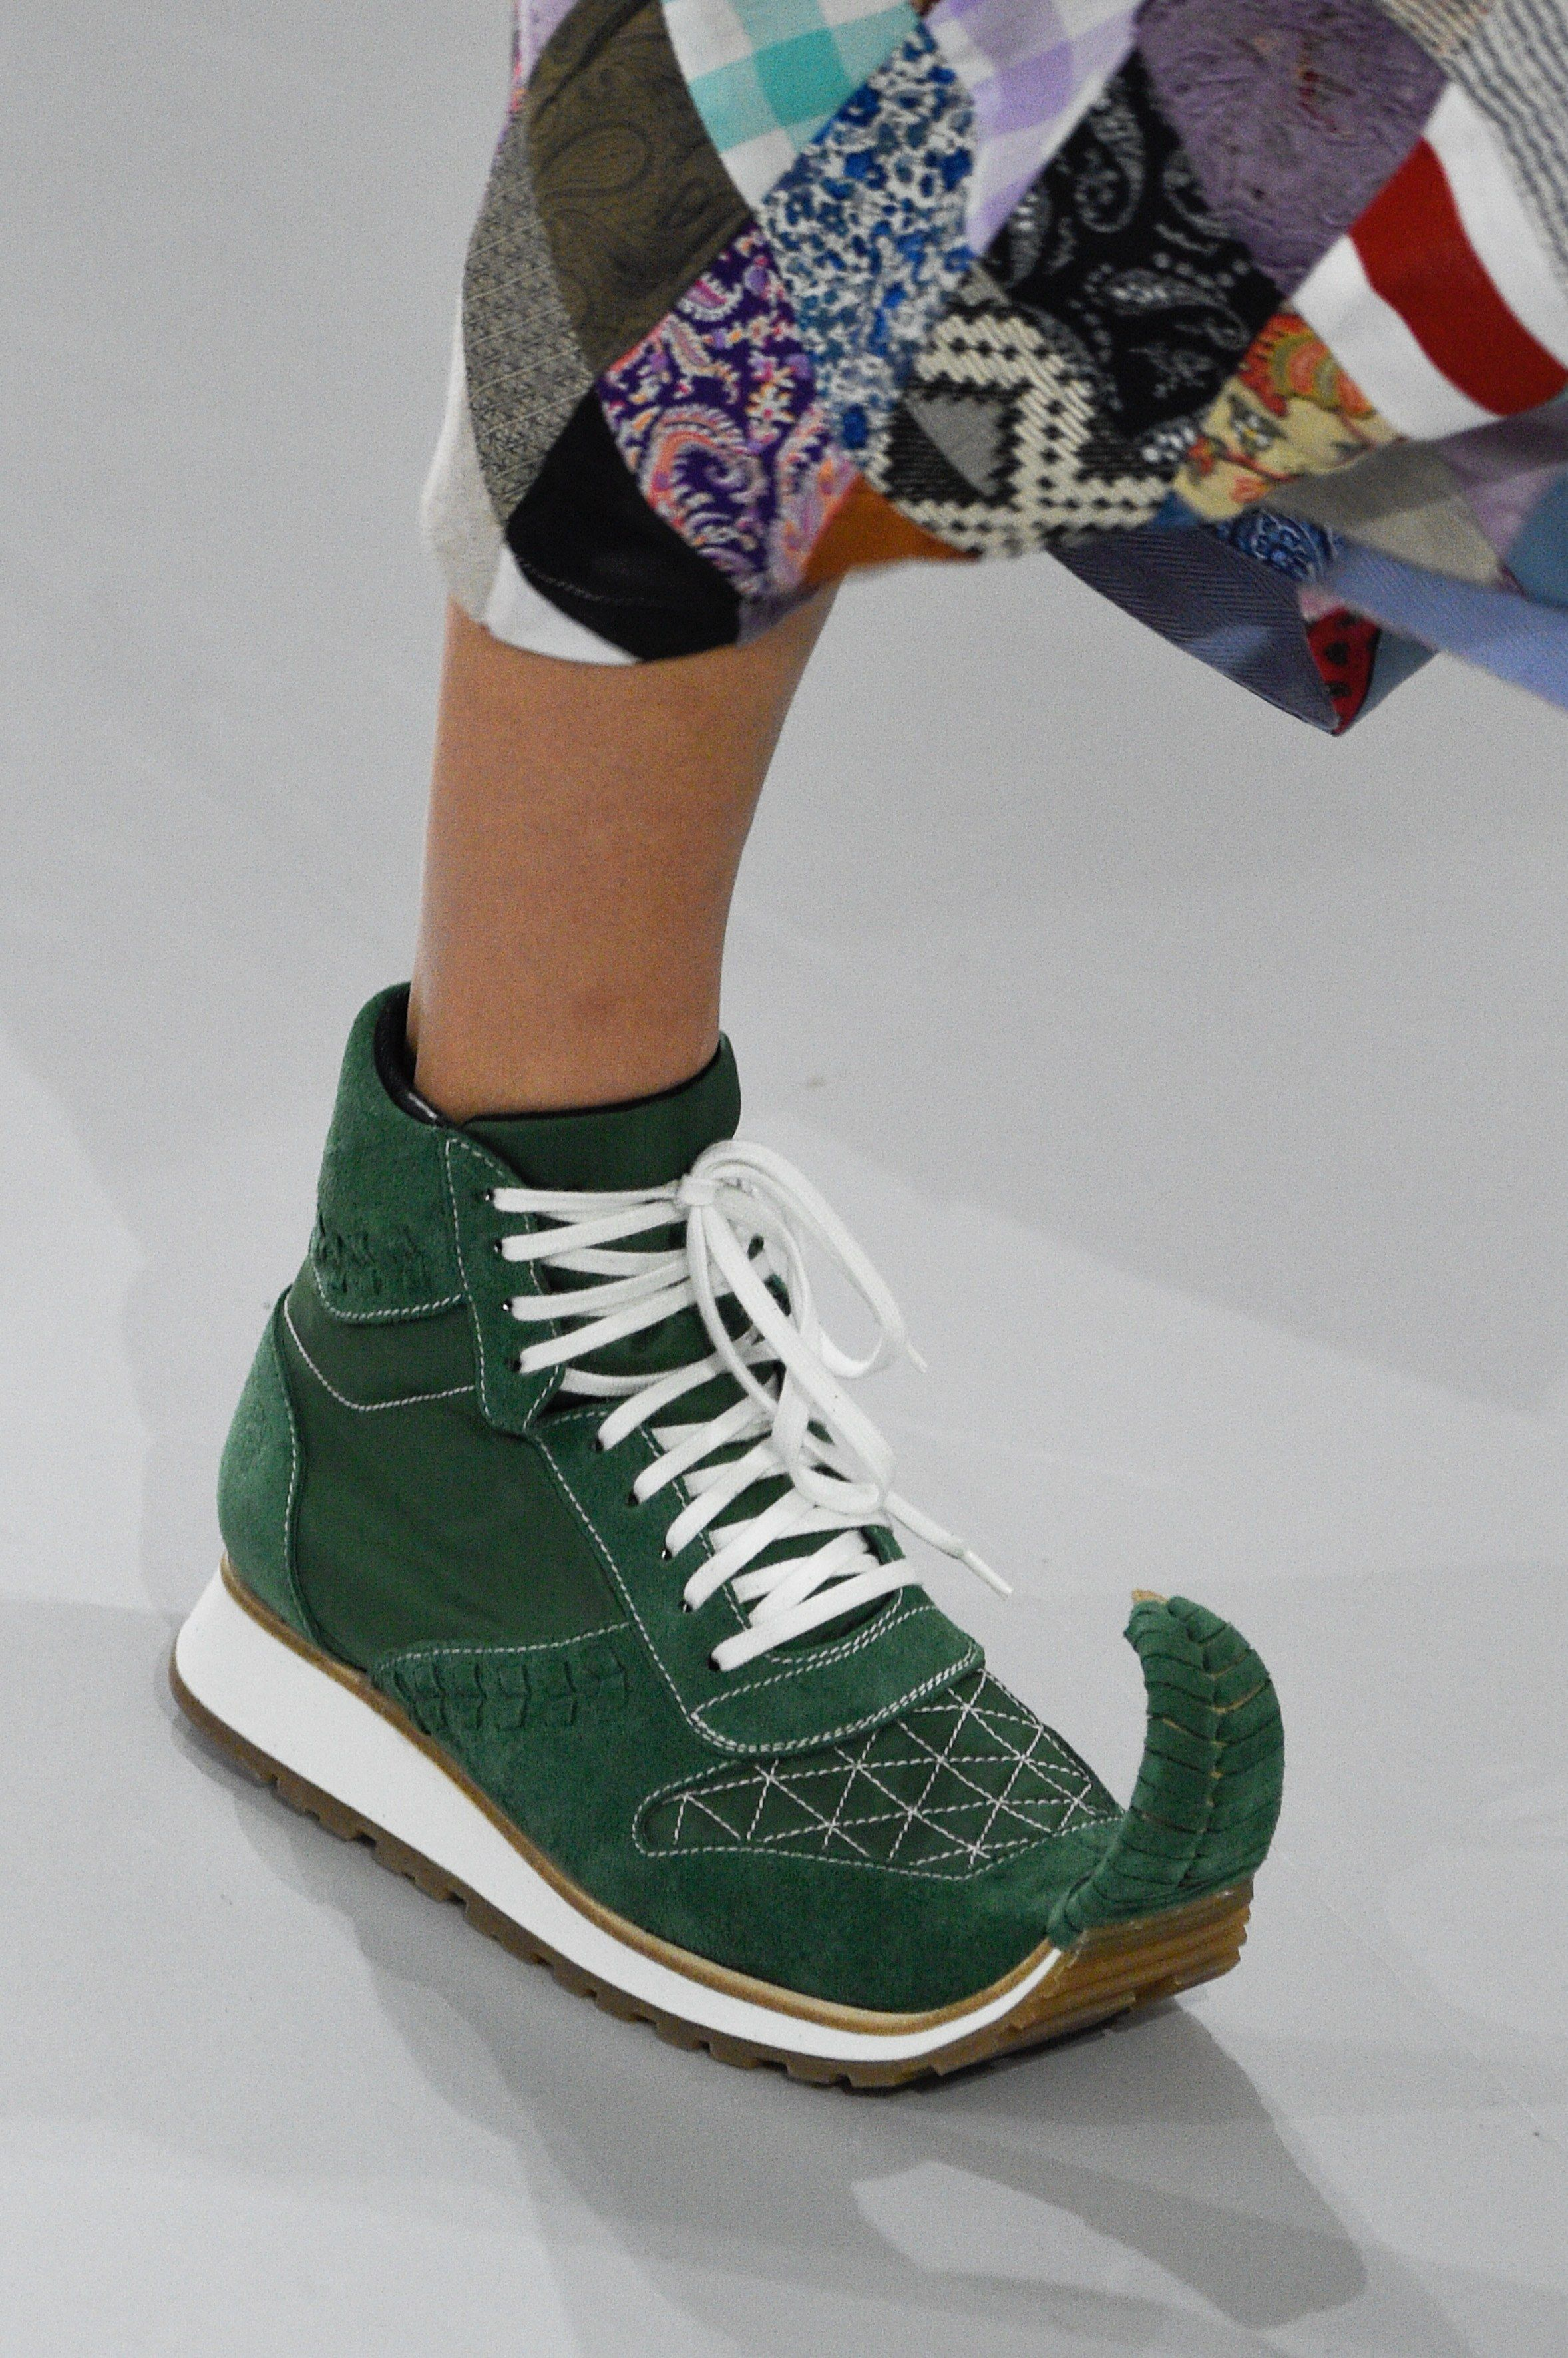 7d14f1f10d9b Jonathan Anderson is behind this season s most surprising emerging trend   Pointy elf shoes